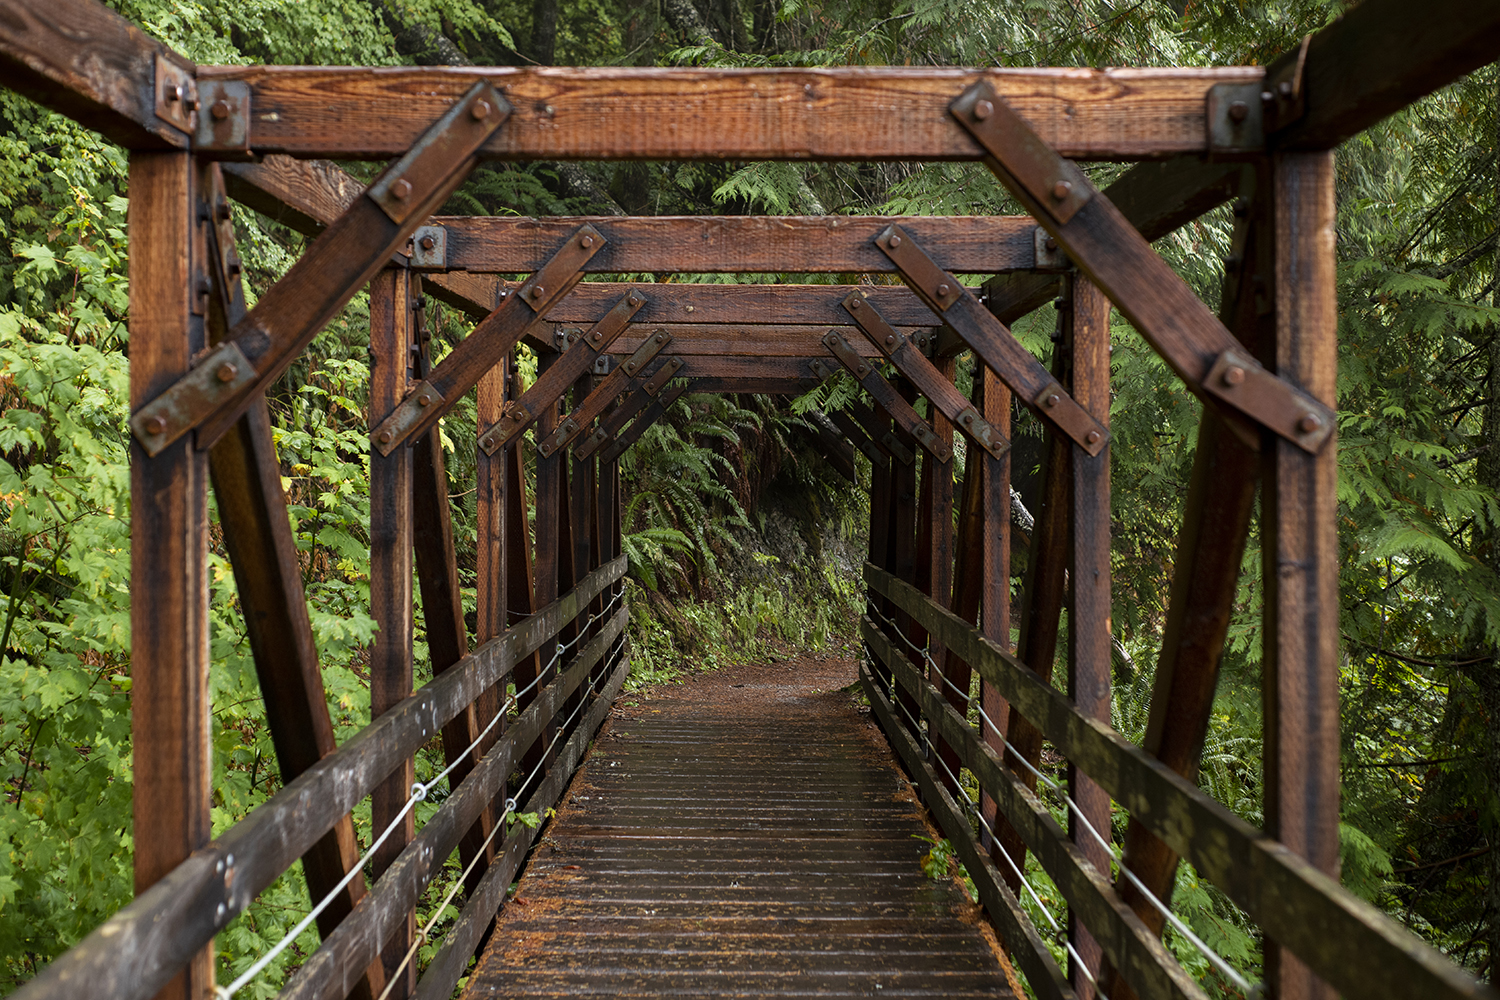 A little over an hour from Seattle the Iron Goat Trail gradually winds through thick forests, beautiful fall foliage and along abandoned tunnels and bridges once used by the Great Northern Railway.{ }(Image: Rachael Jones / Seattle Refined)